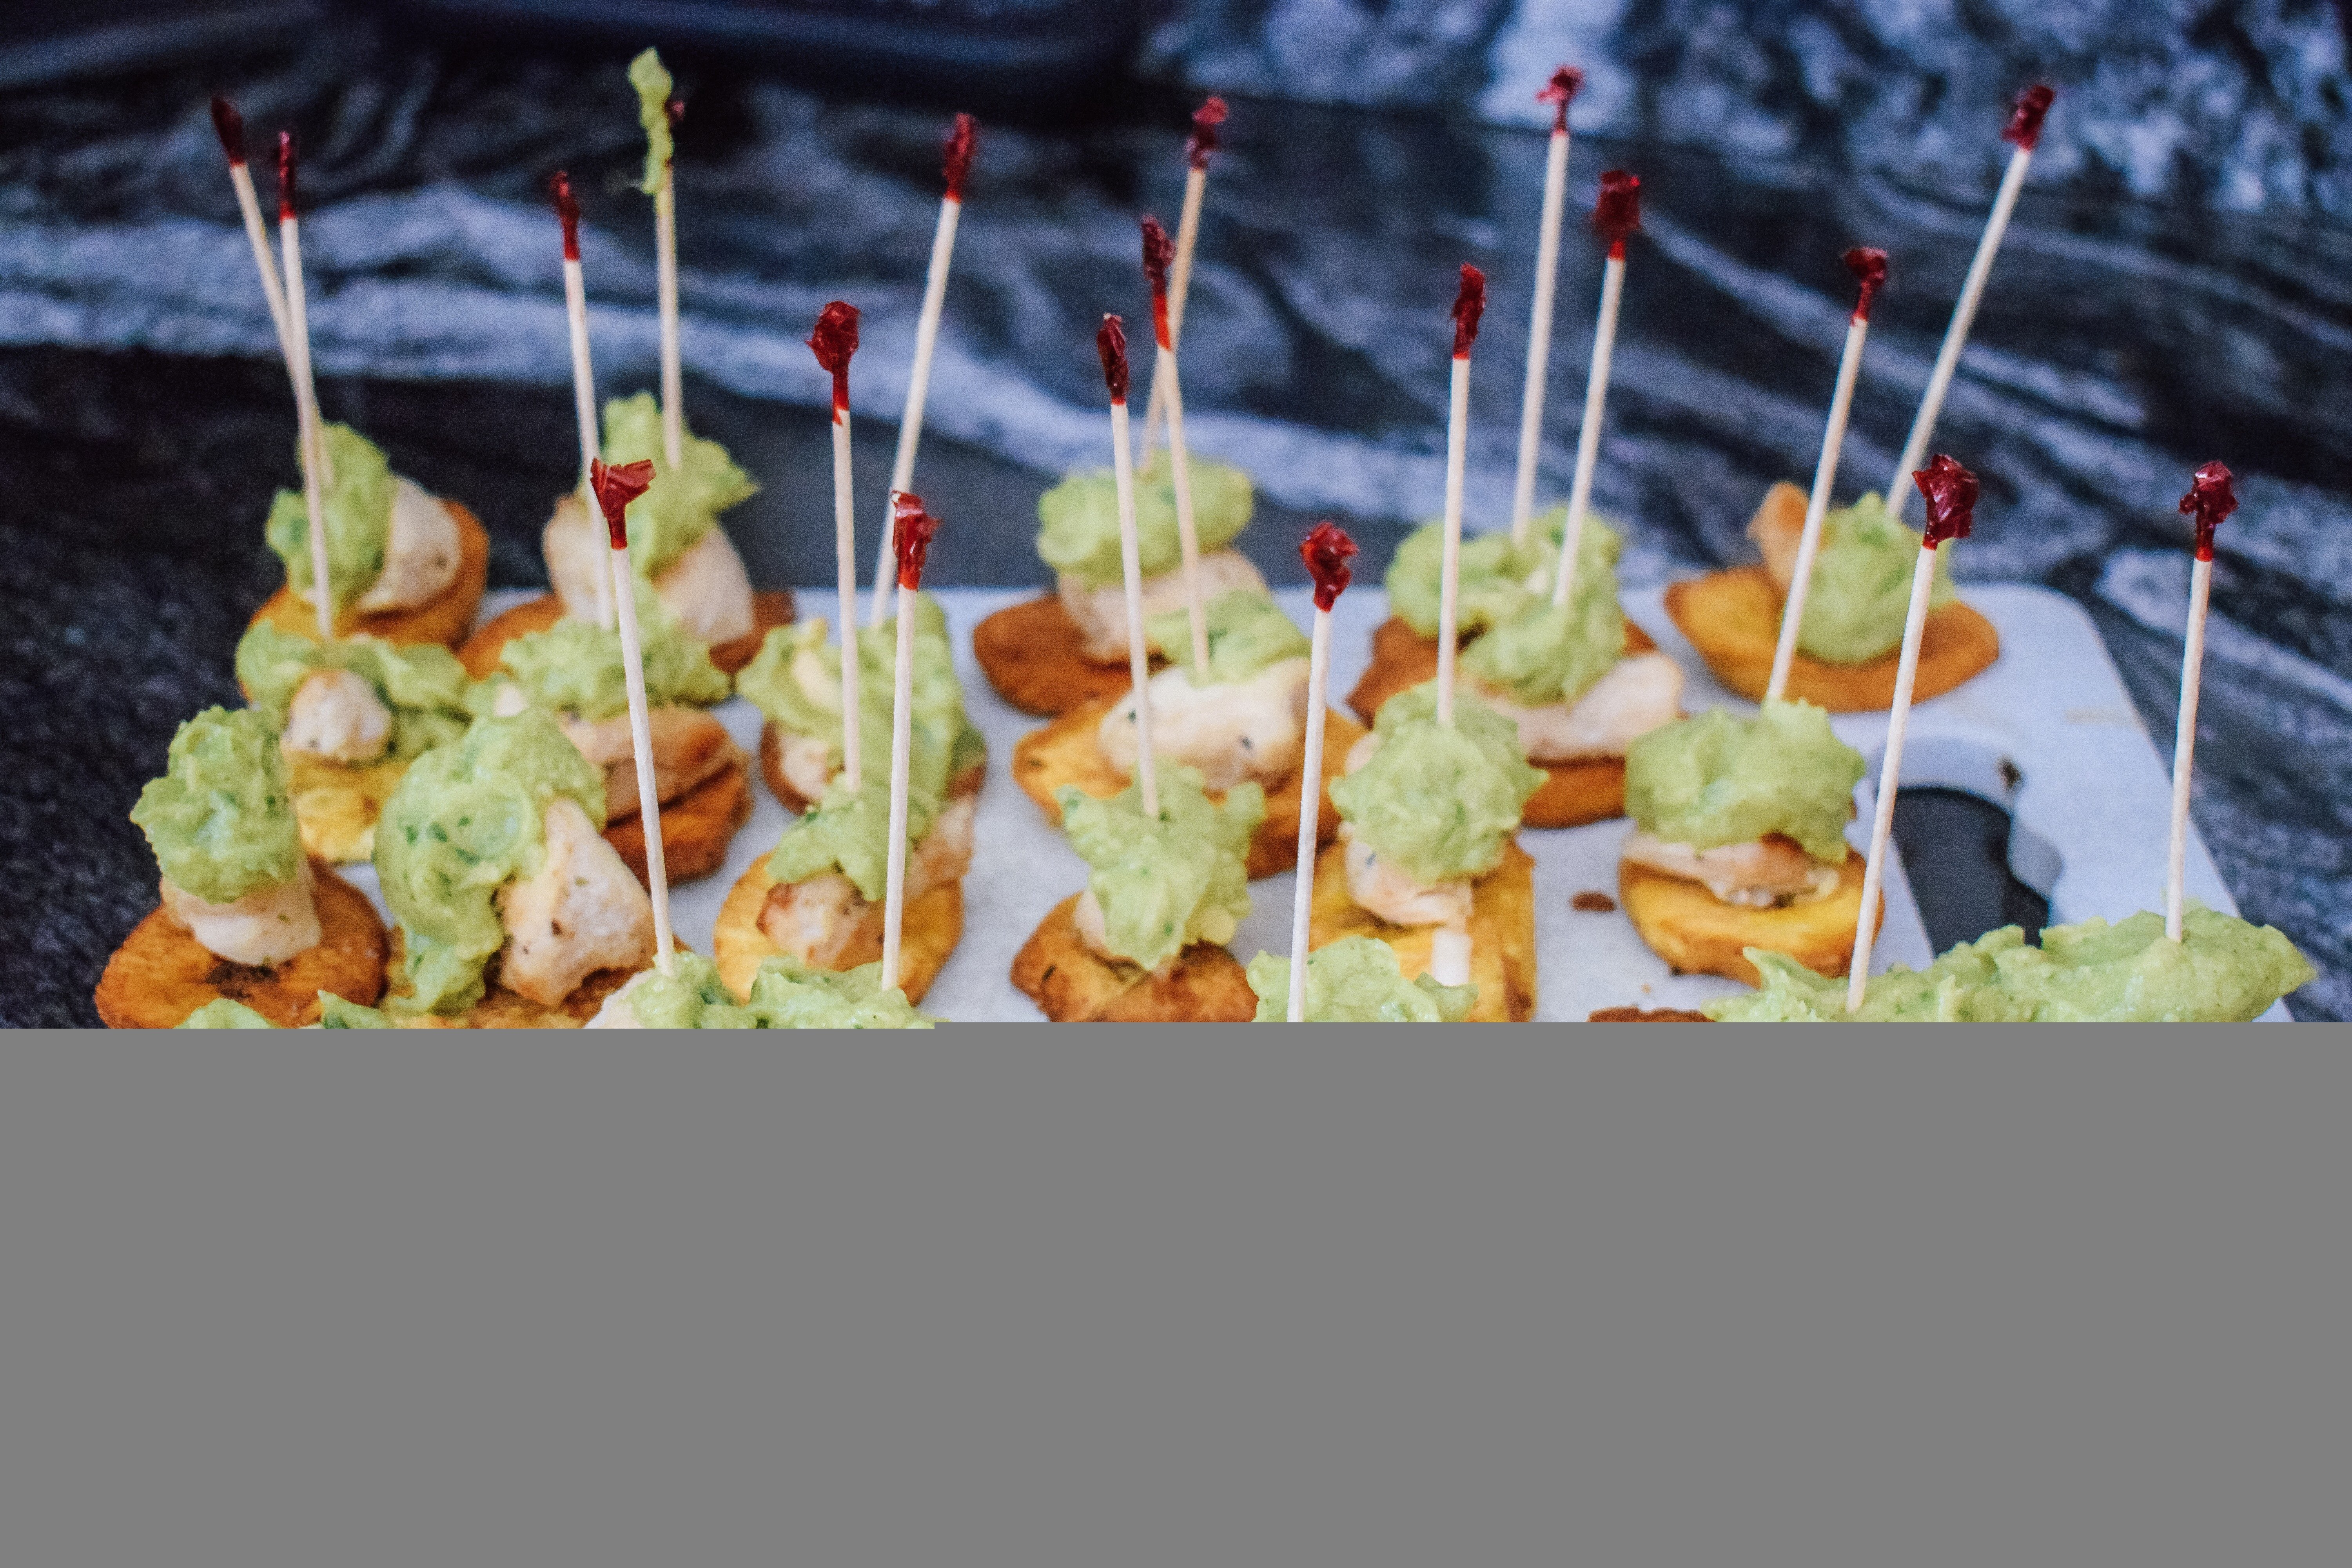 Simple and easy chicken and guacamole plantain bites